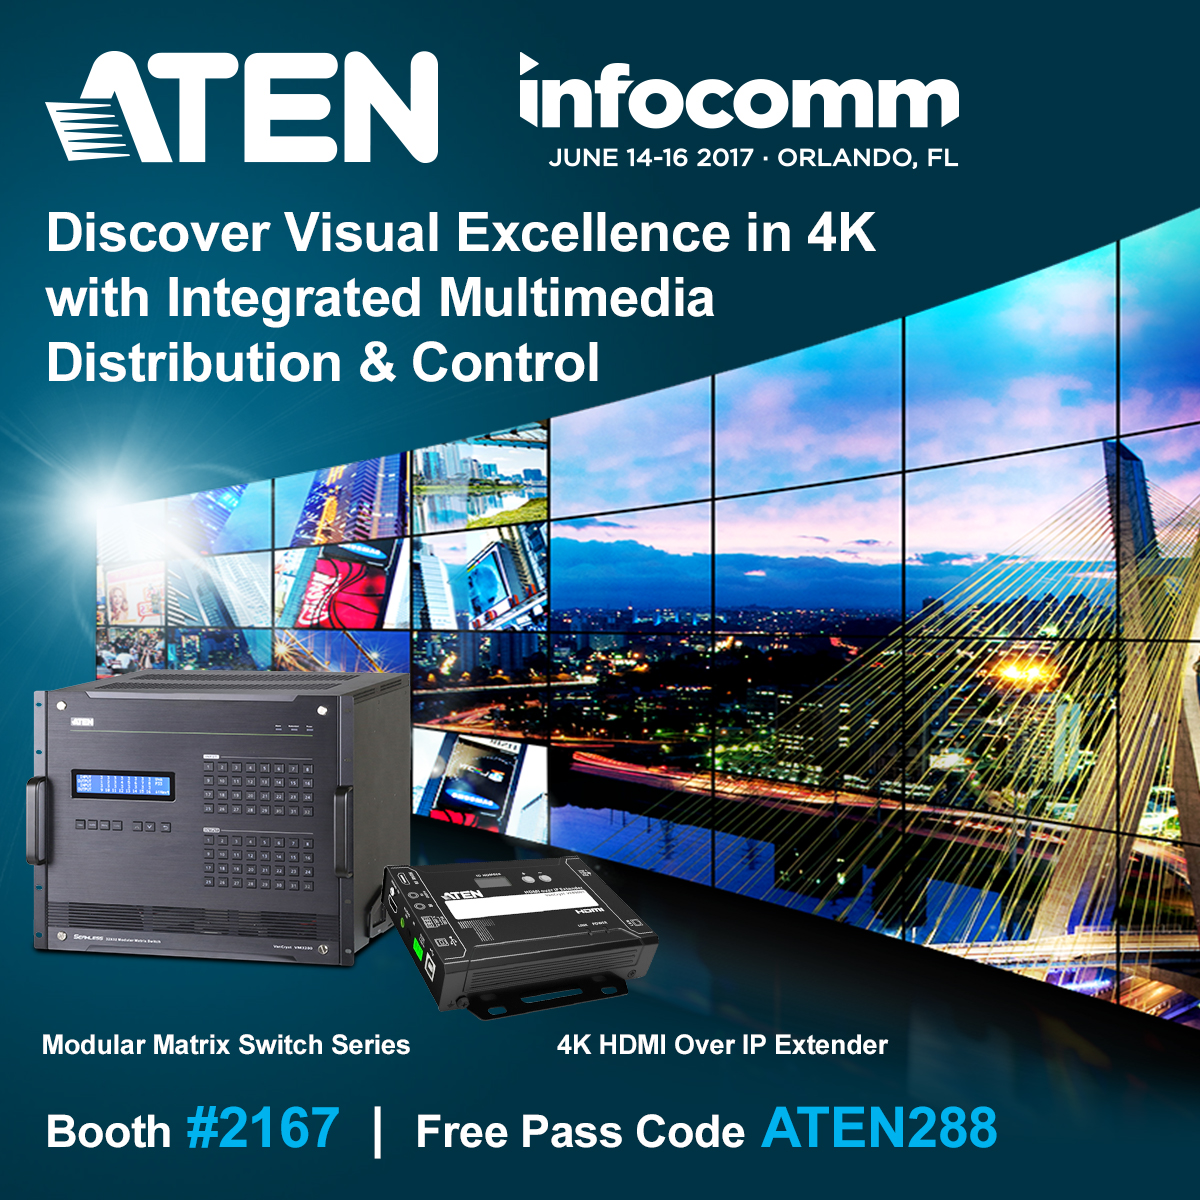 ATEN at InfoComm2017